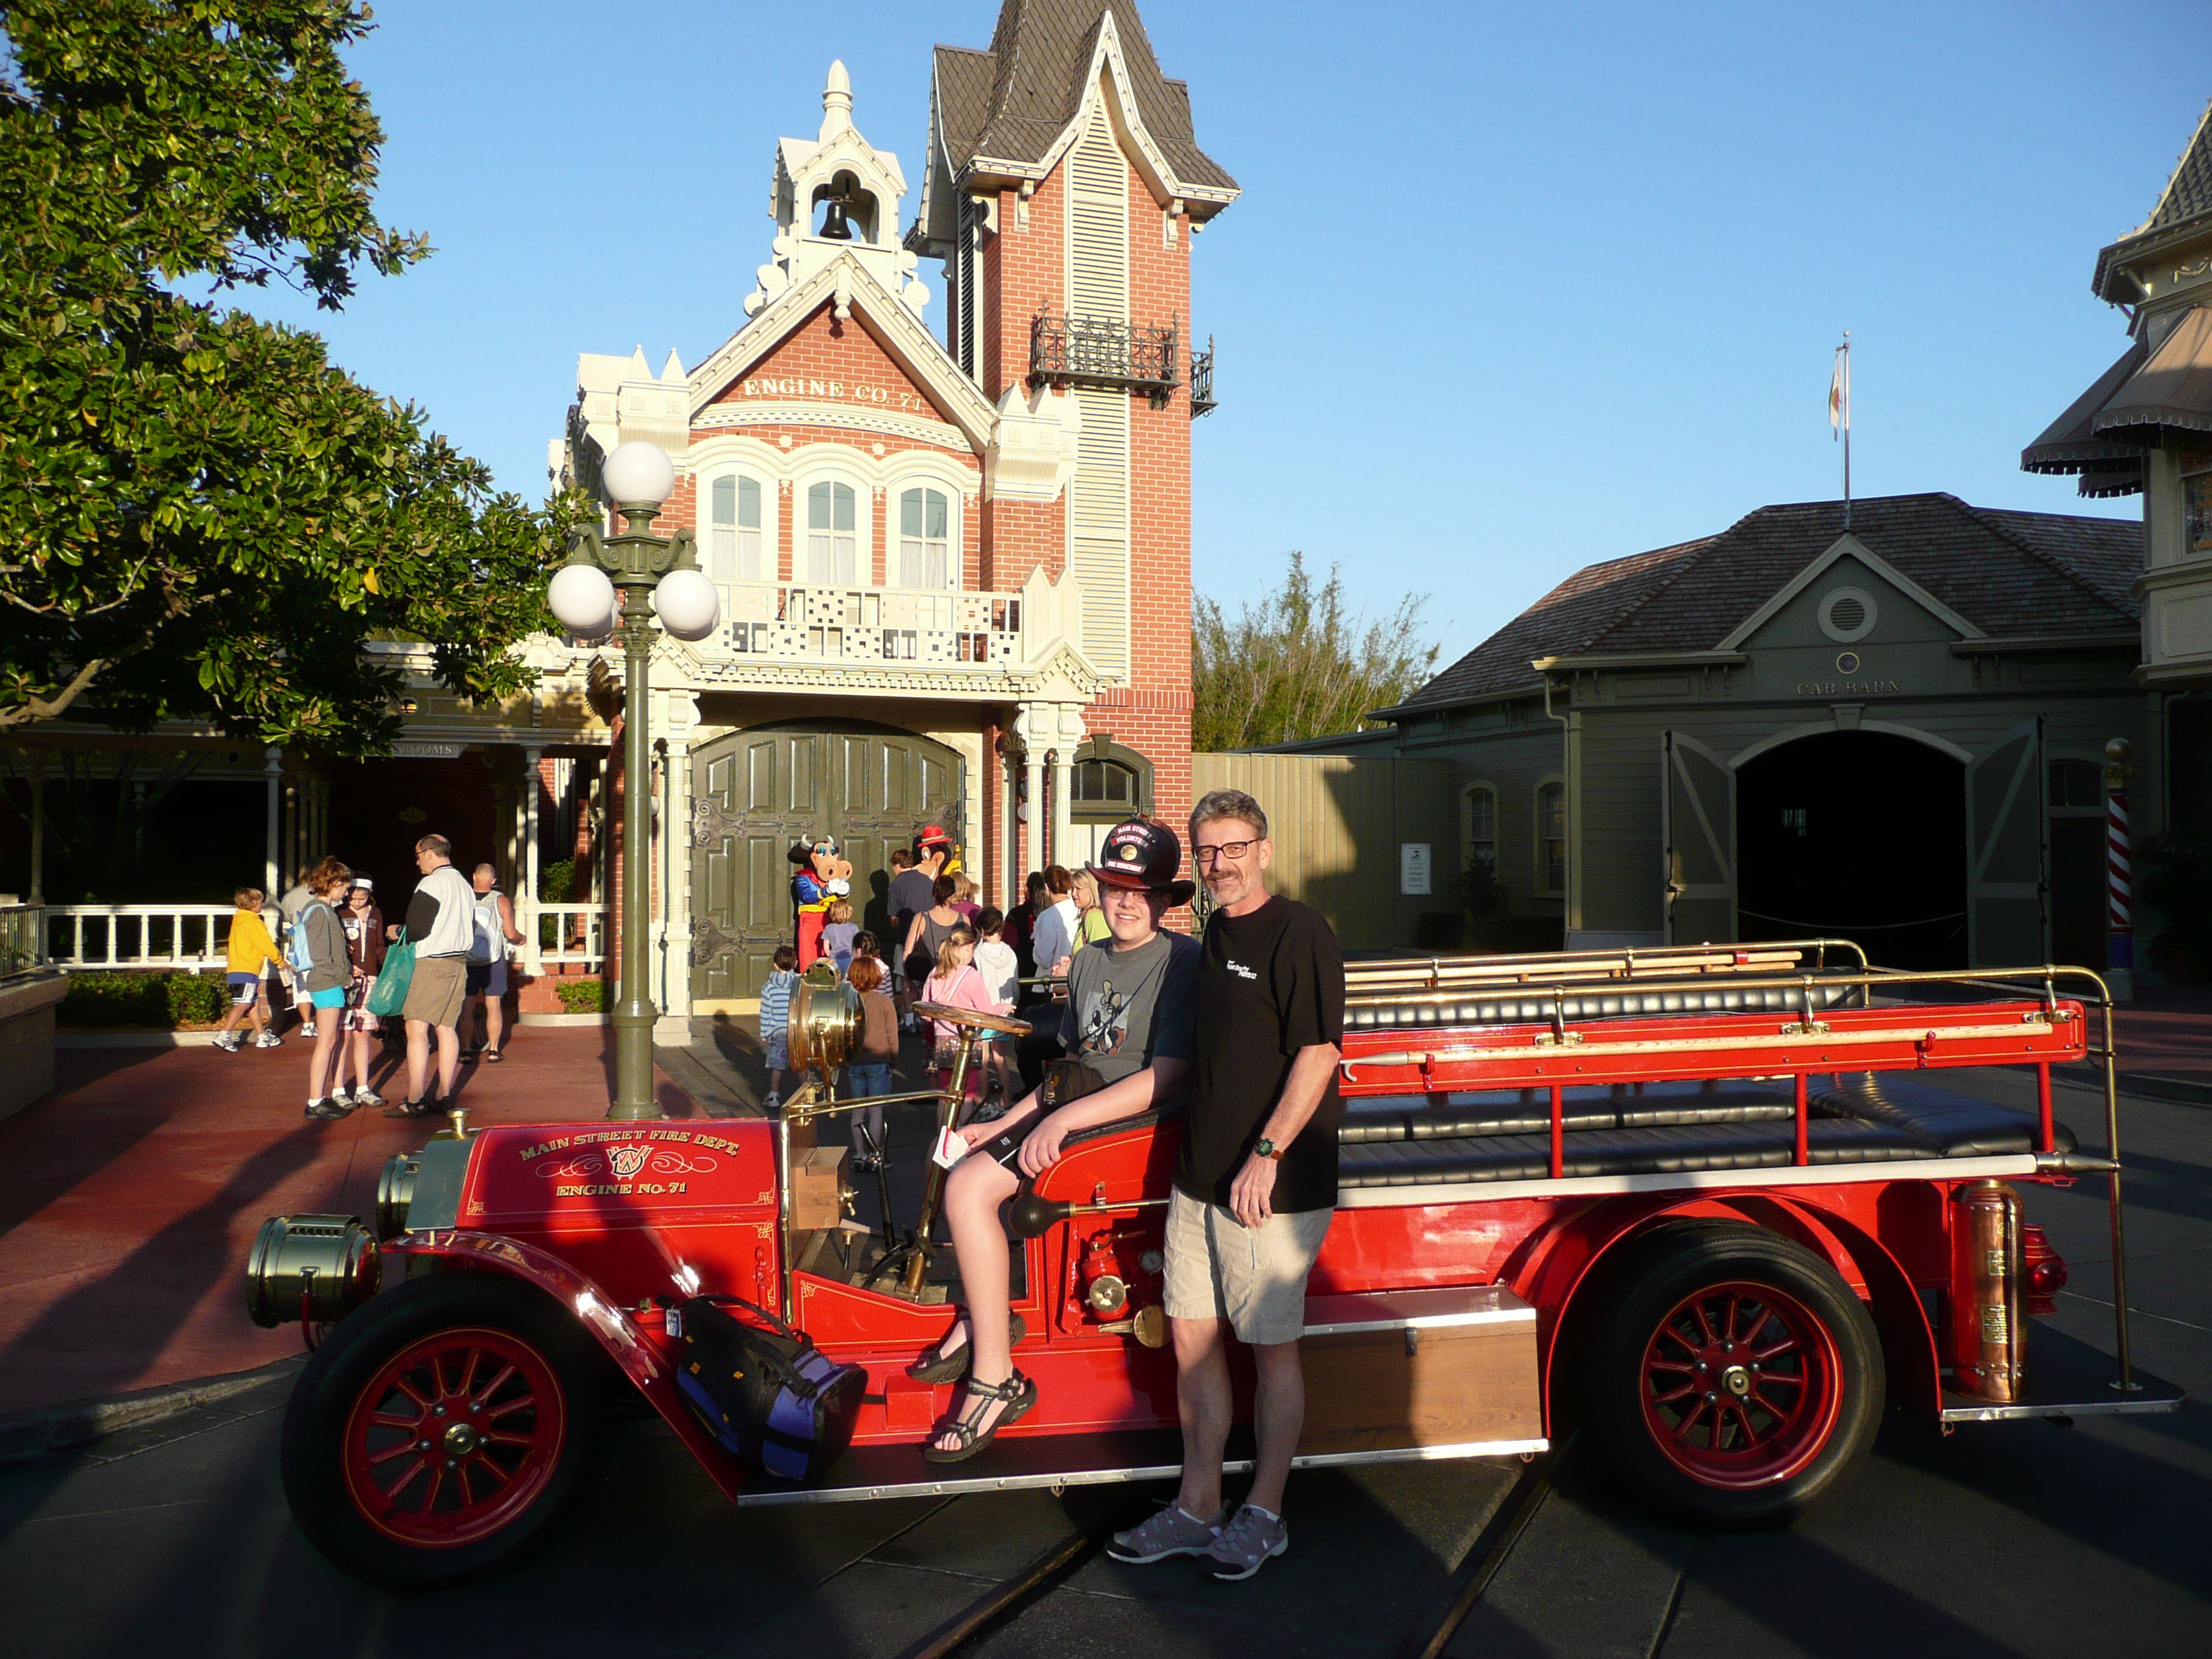 Main Street, USA at Disney World; Dad and I with a fire truck with me wearing a fireman's helmet.